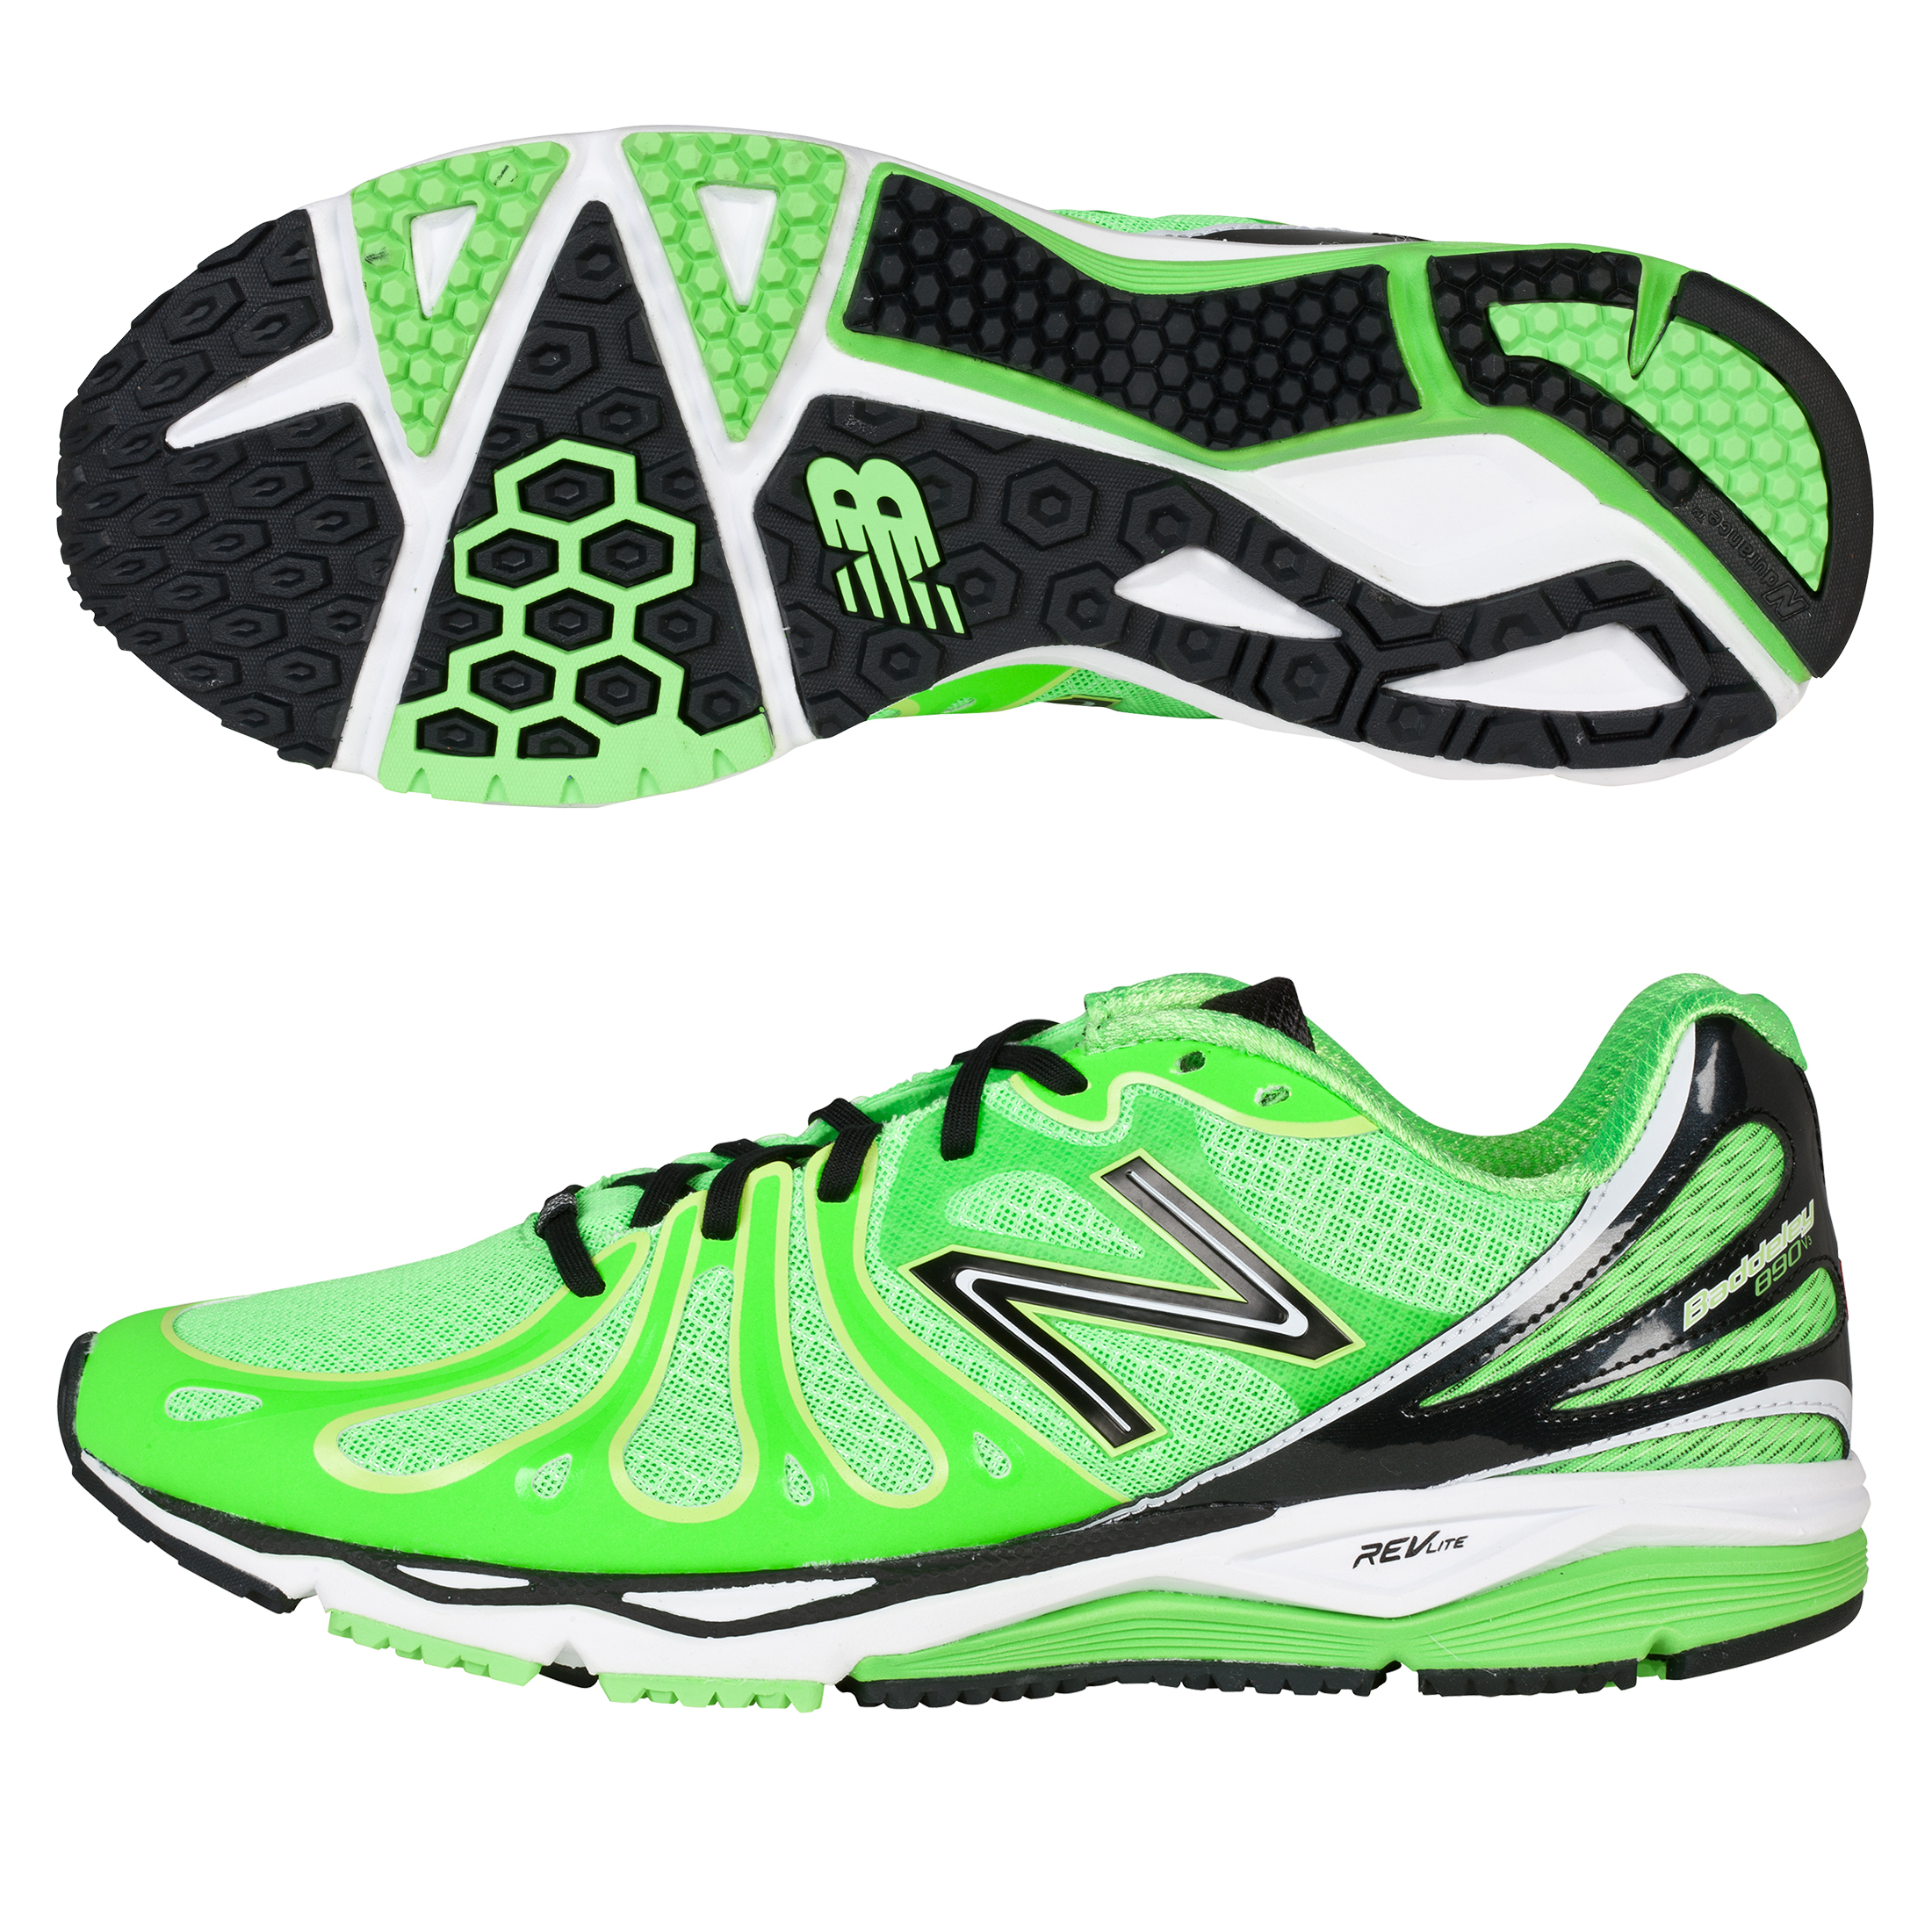 New Balance M890 Speed Running Trainers - Green